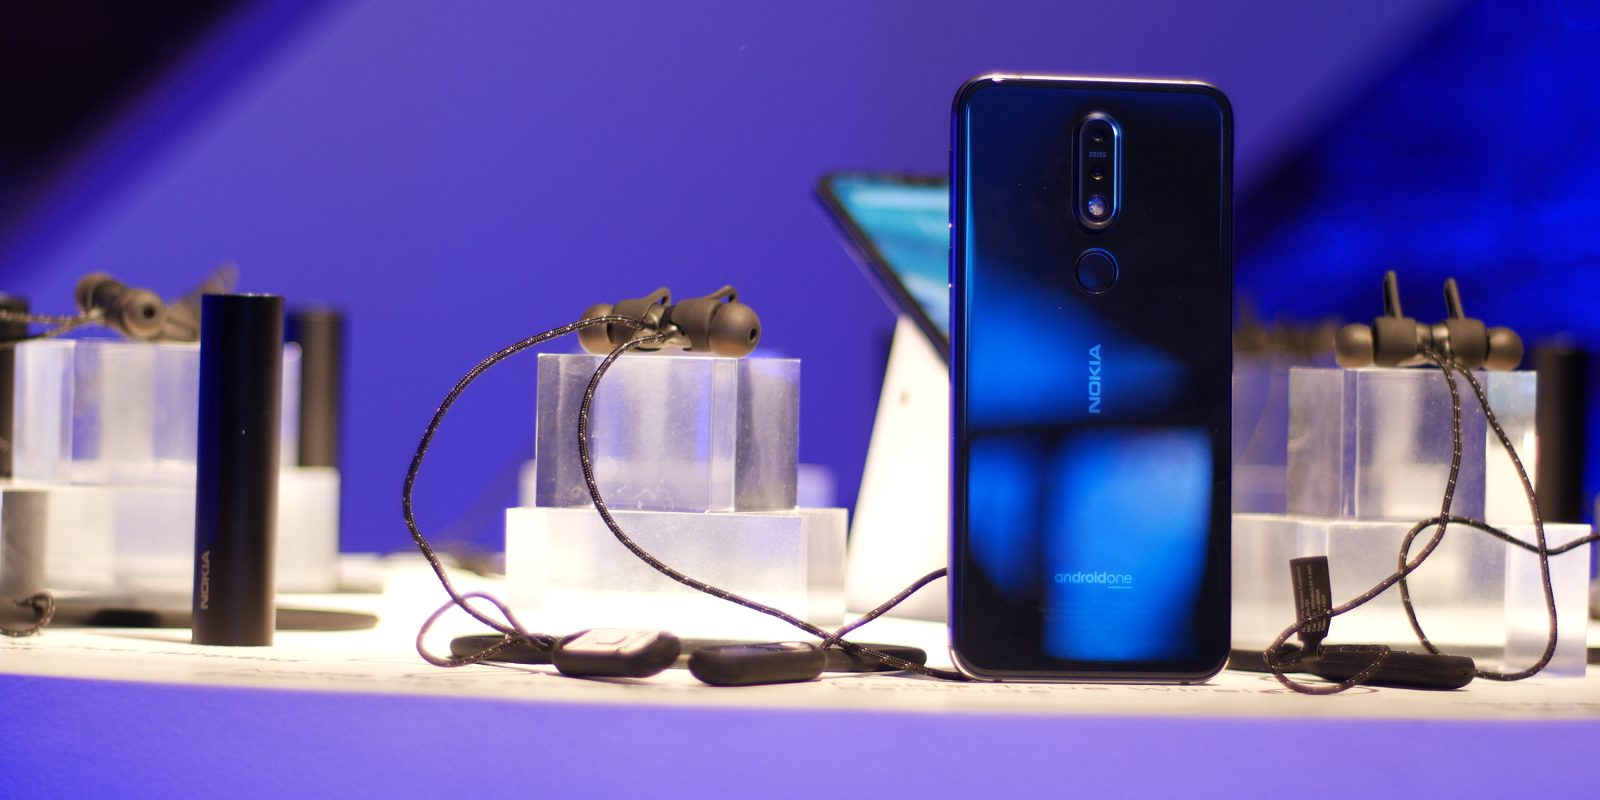 Hands-on: The Nokia 7.1 fuses elegant design and Android One for a great experience [Video]